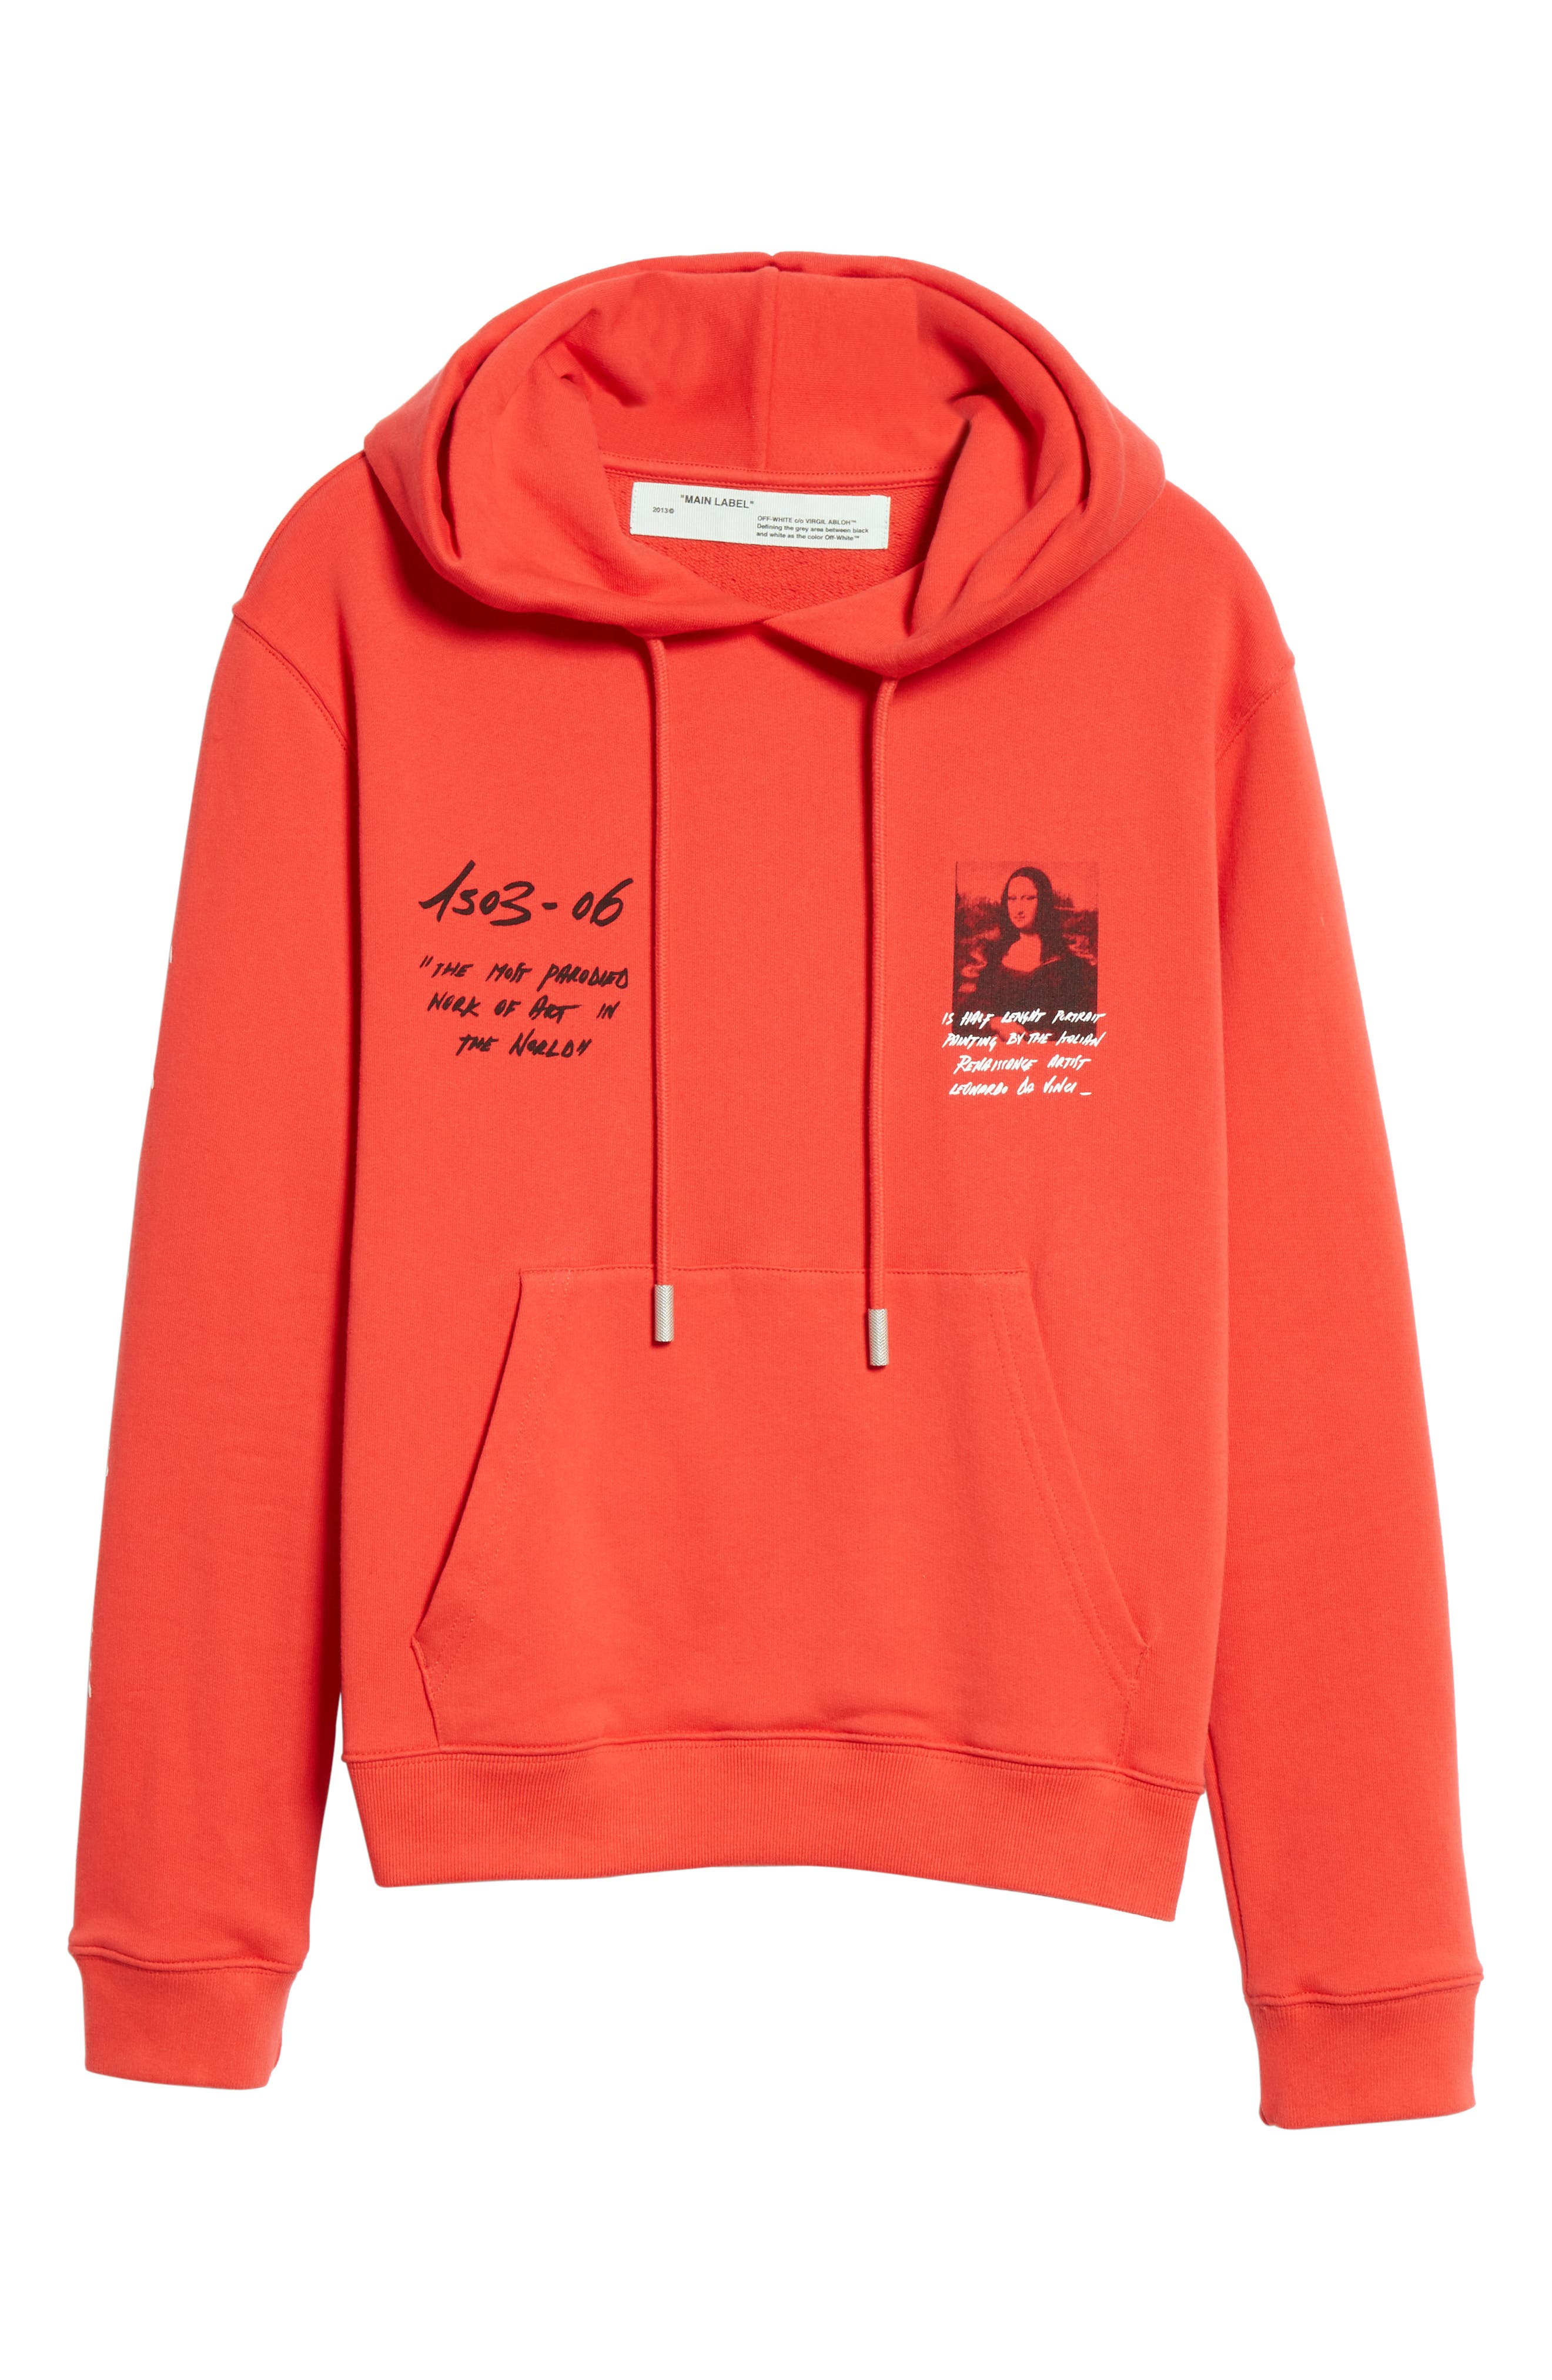 OFF-WHITE, Monnalisa Slim Fit Graphic Hoodie, Alternate thumbnail 6, color, RED